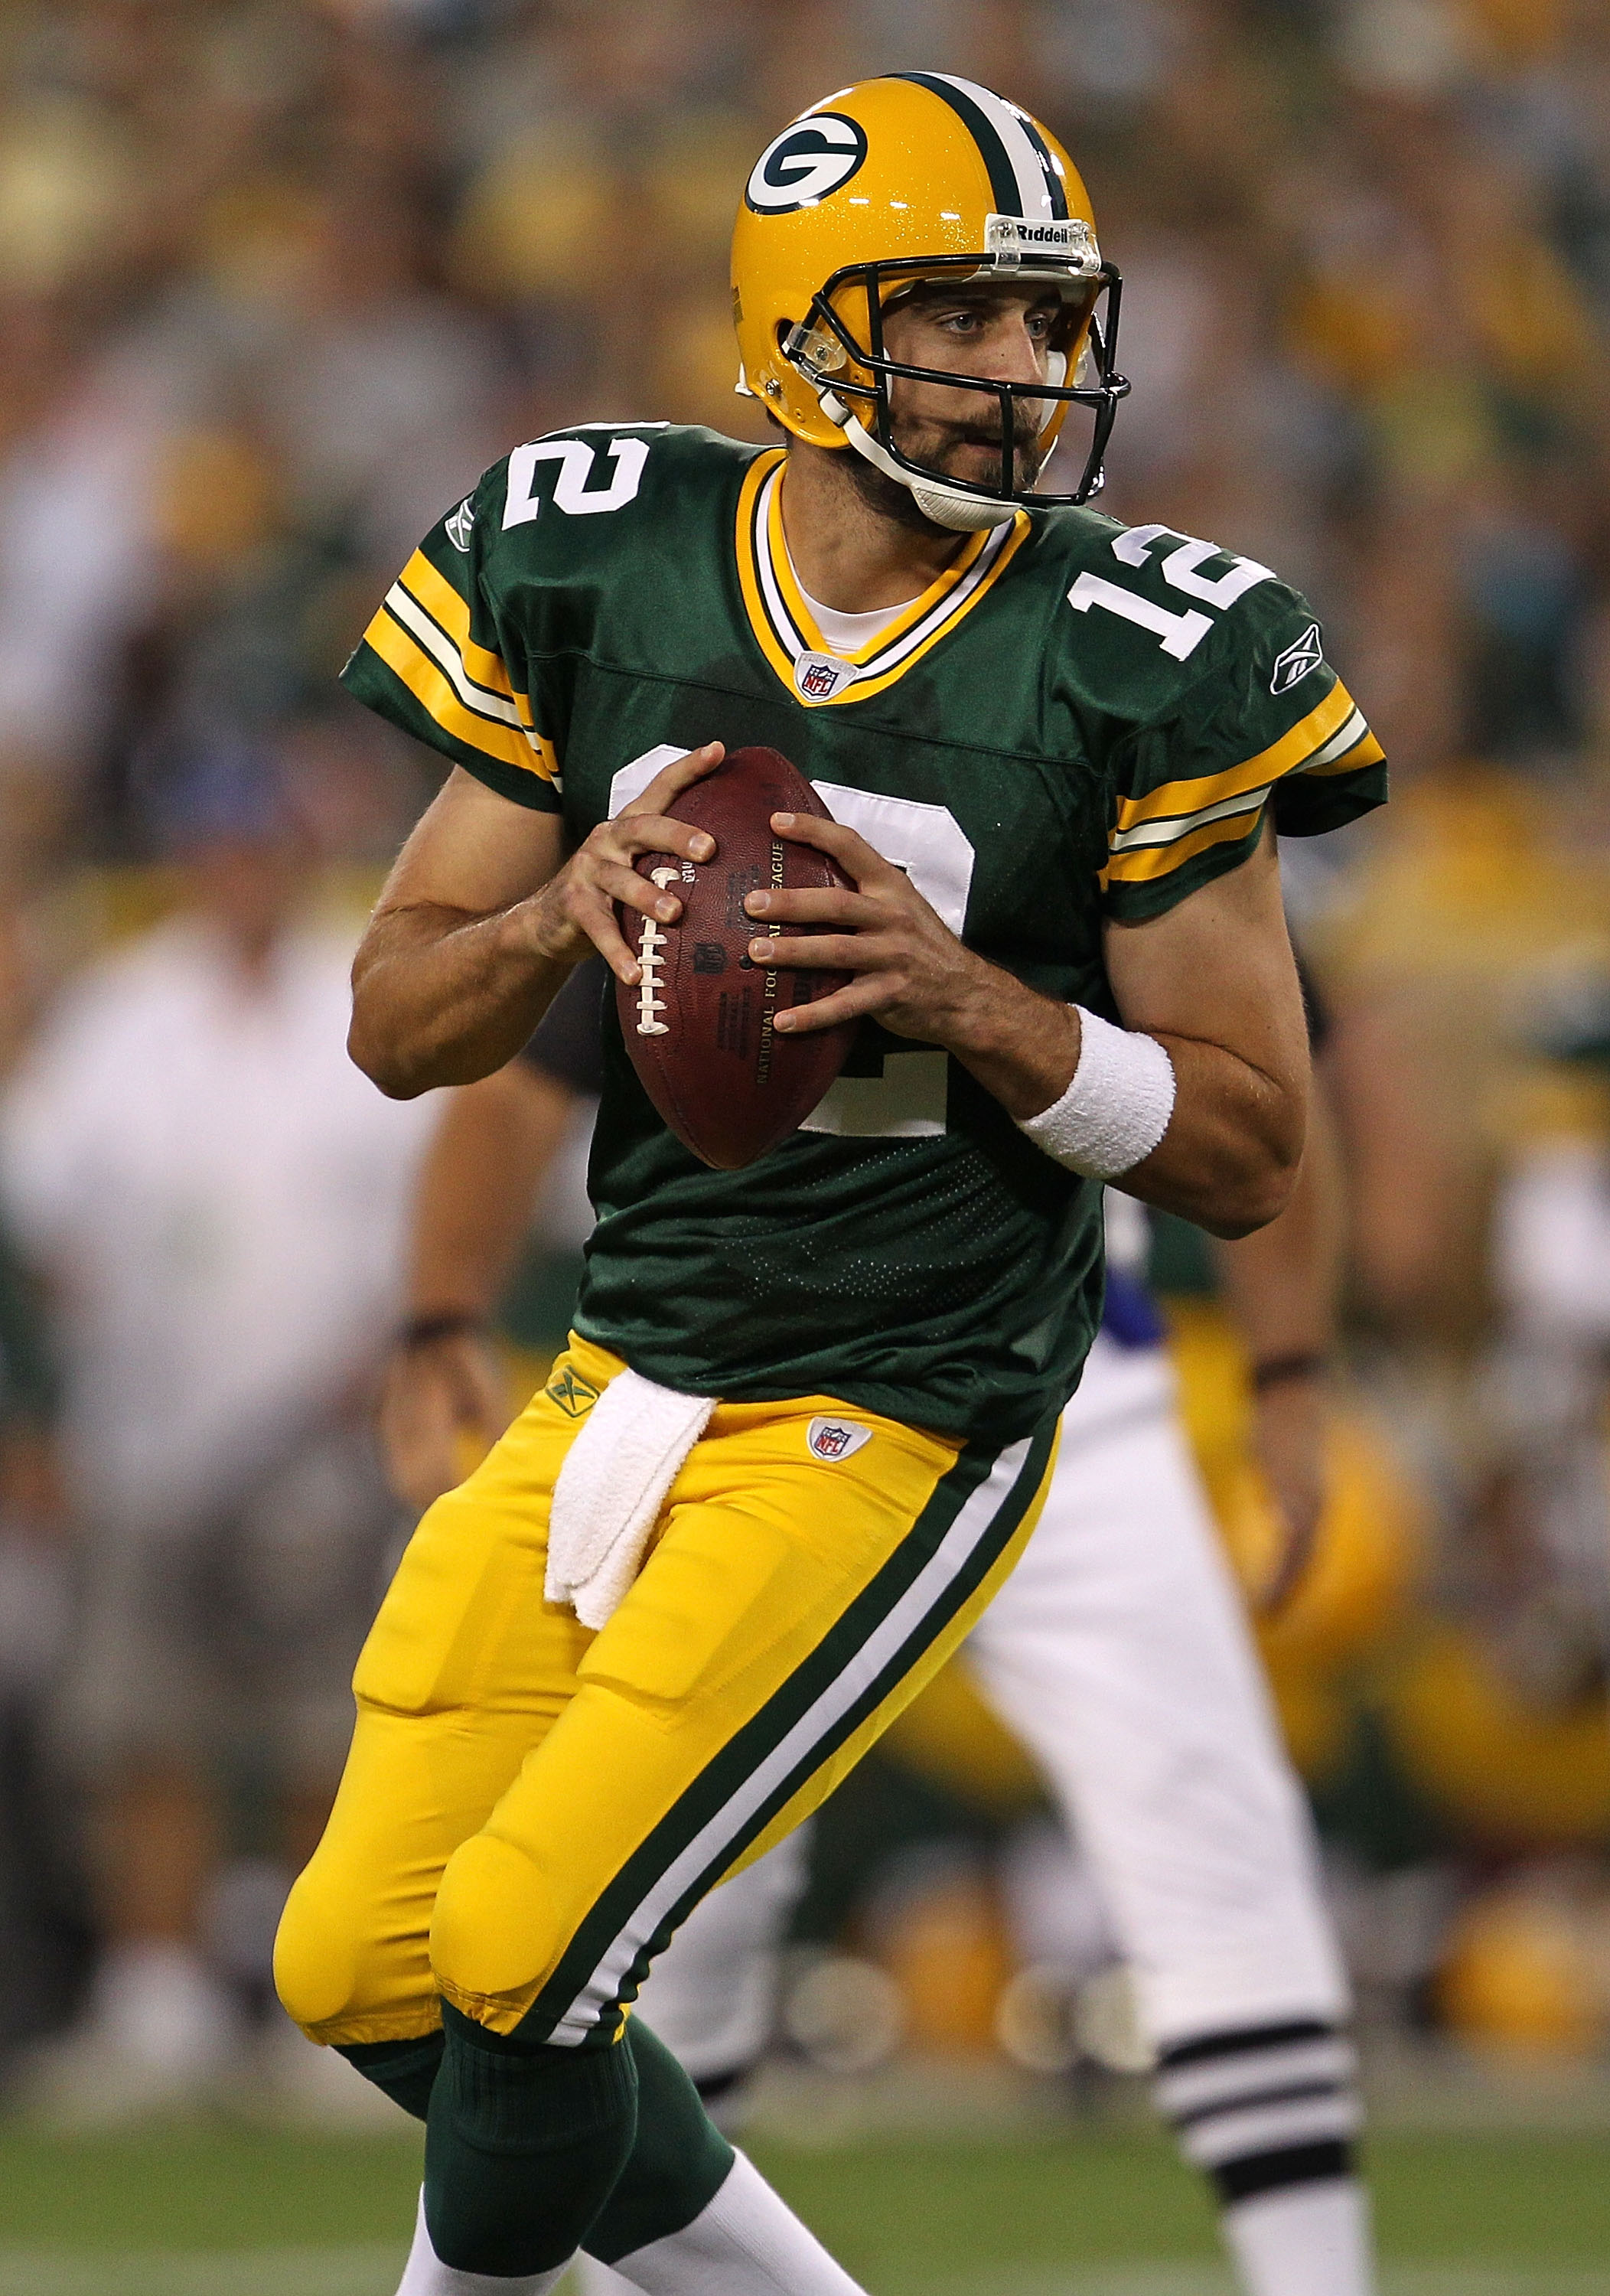 GREEN BAY, WI - AUGUST 26: Aaron Rodgers #12 of the Green Bay Packers looks for a receiver against the Indianapolis Colts during a preseason game at Lambeau Field on August 26, 2010 in Green Bay, Wisconsin. The Packers defeated the Colts 59-24.  (Photo by